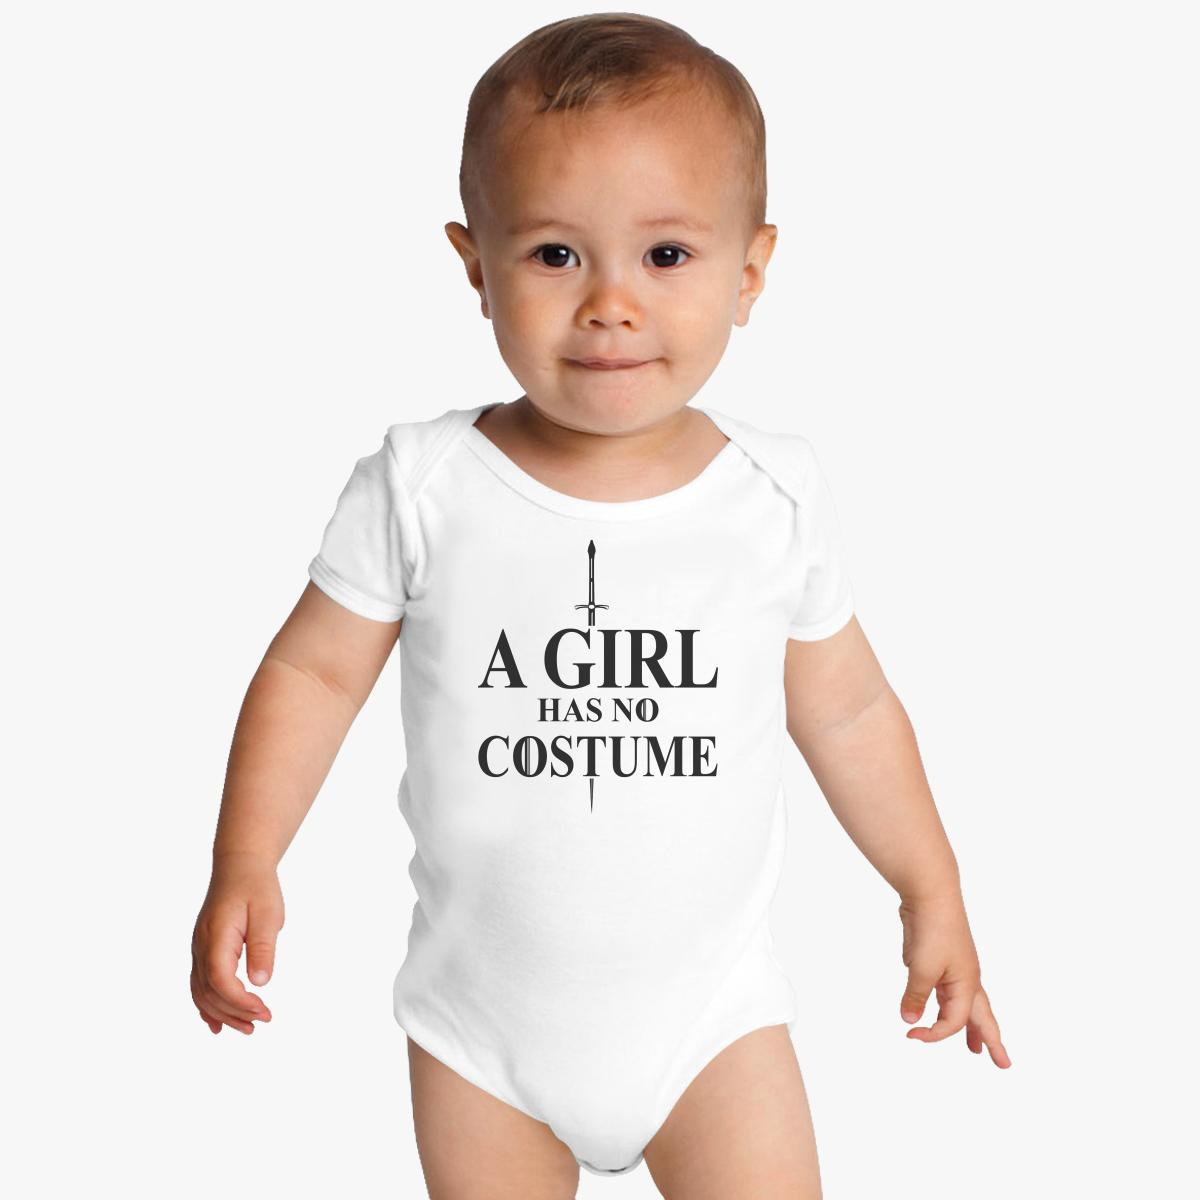 A Girl Has No Costume Baby Onesies